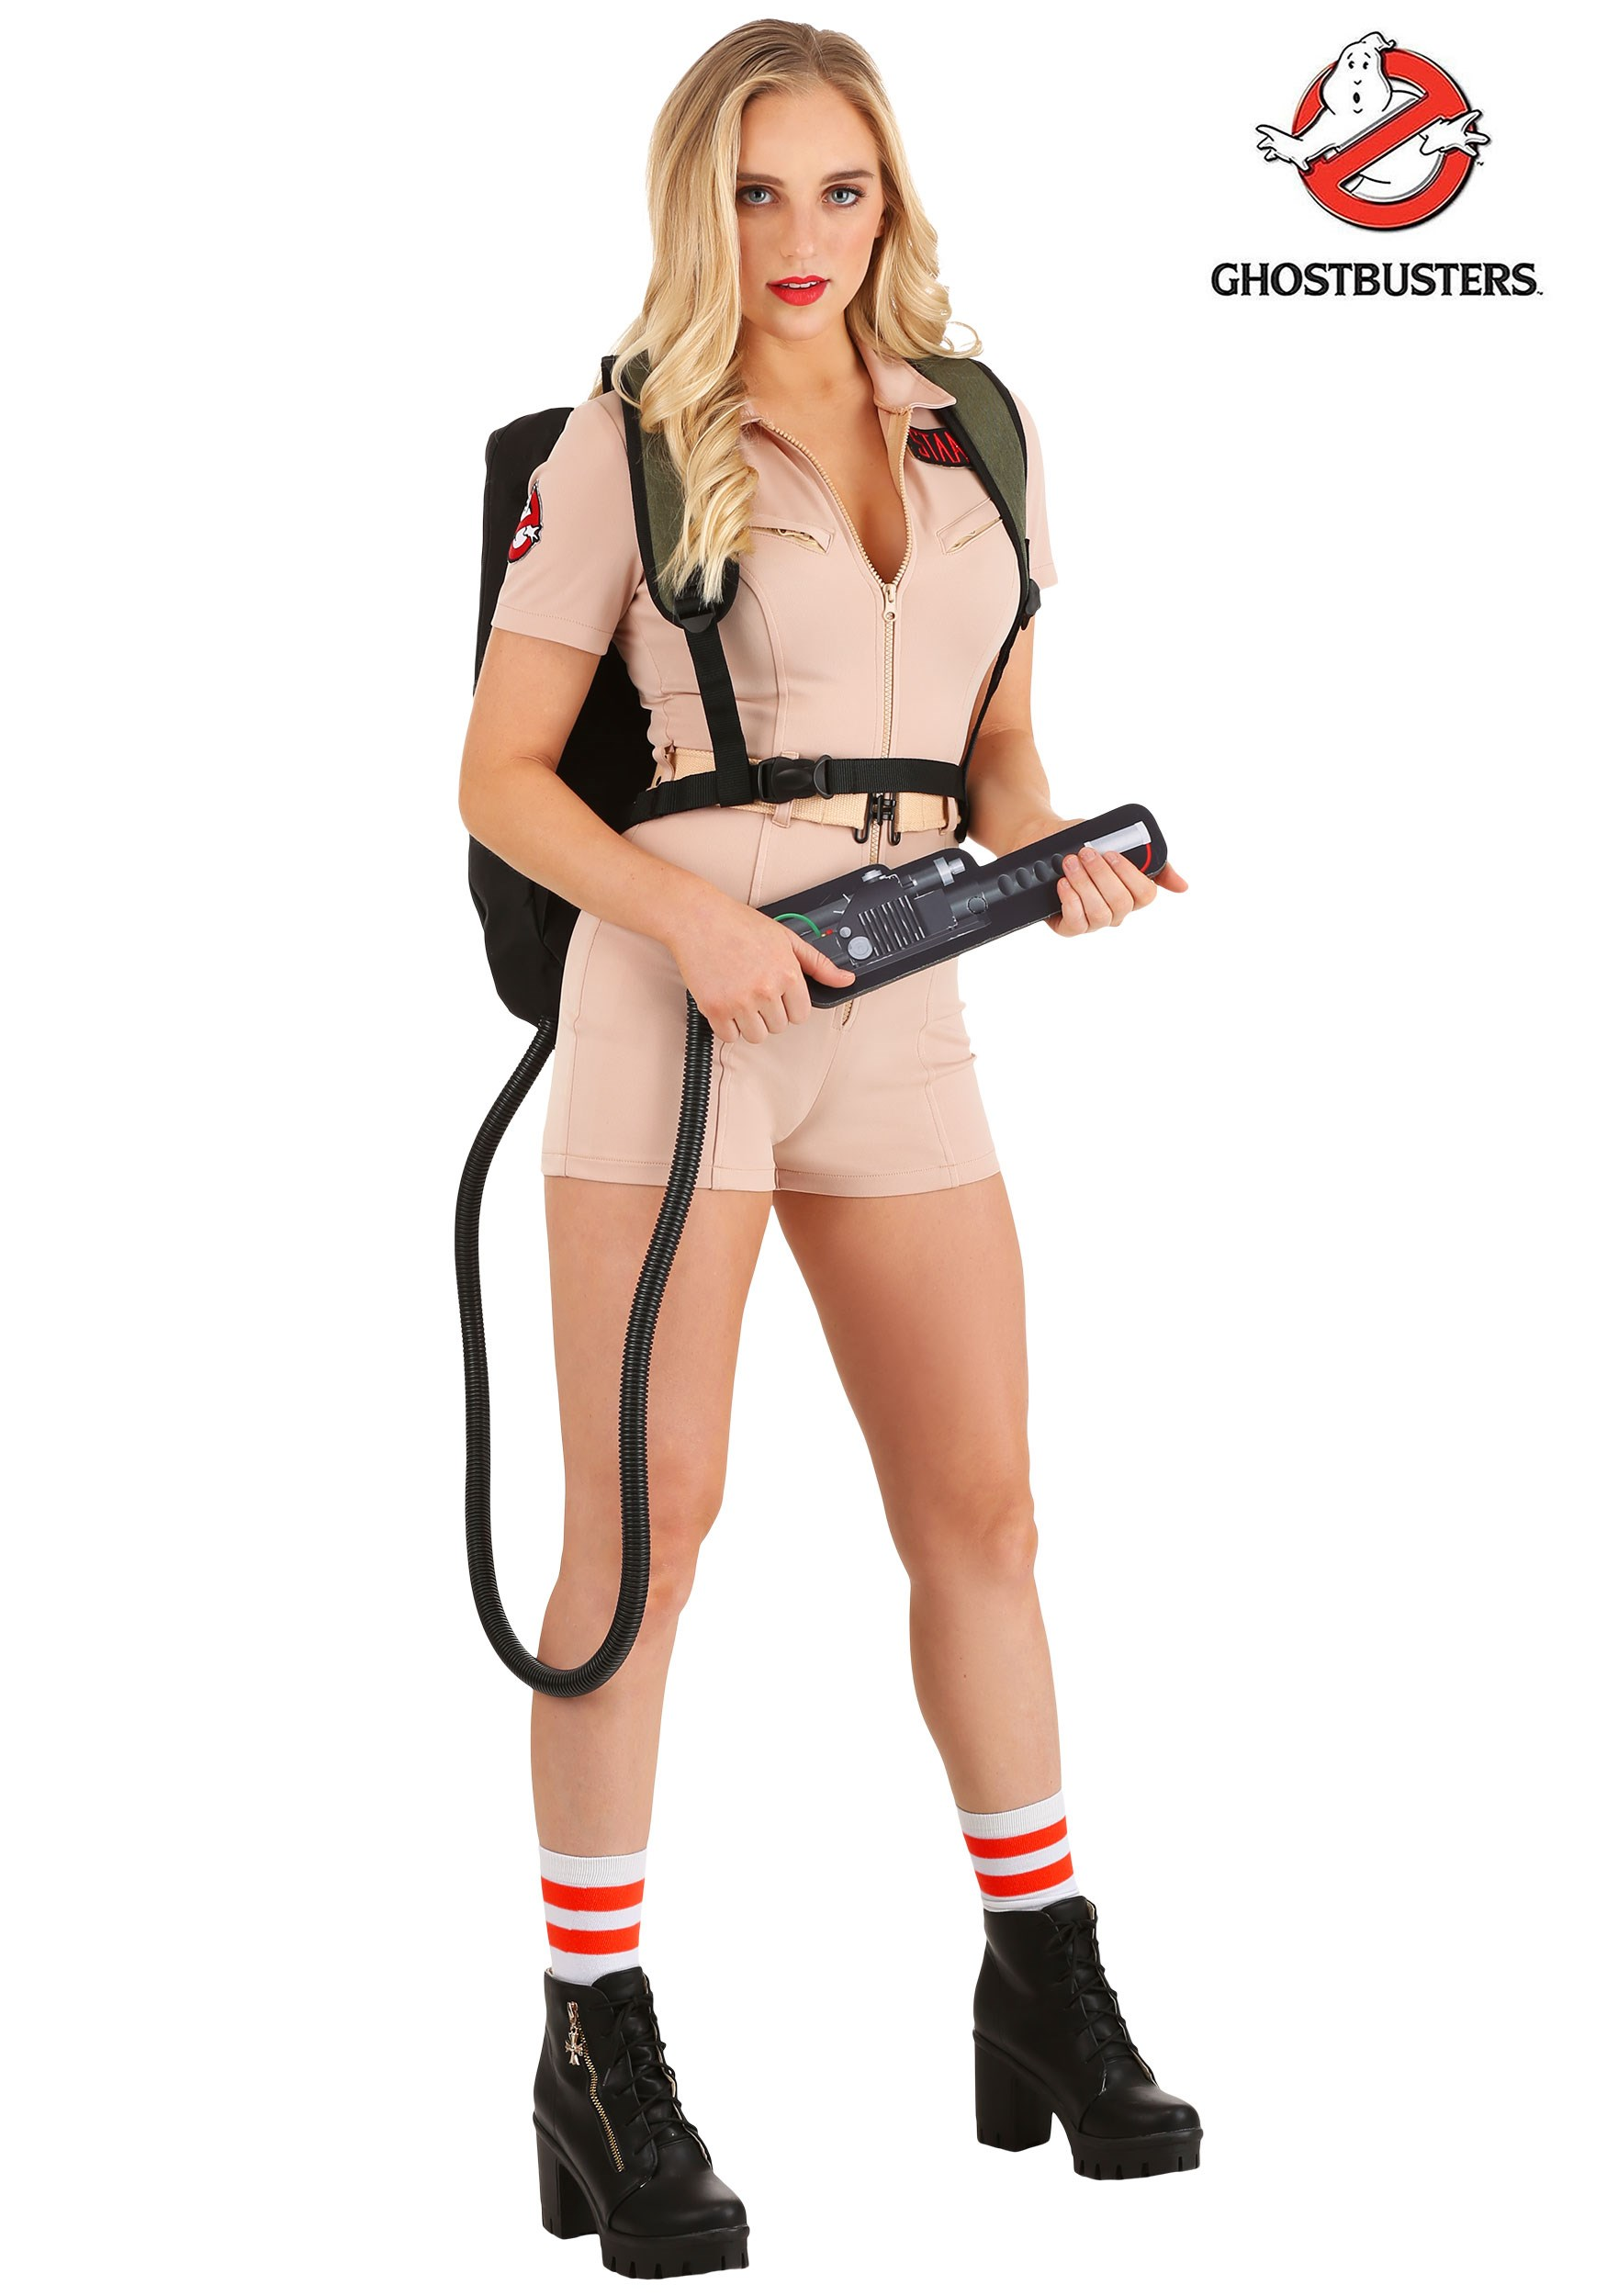 Ghostbusters Womens Daring Ghostbuster Costume